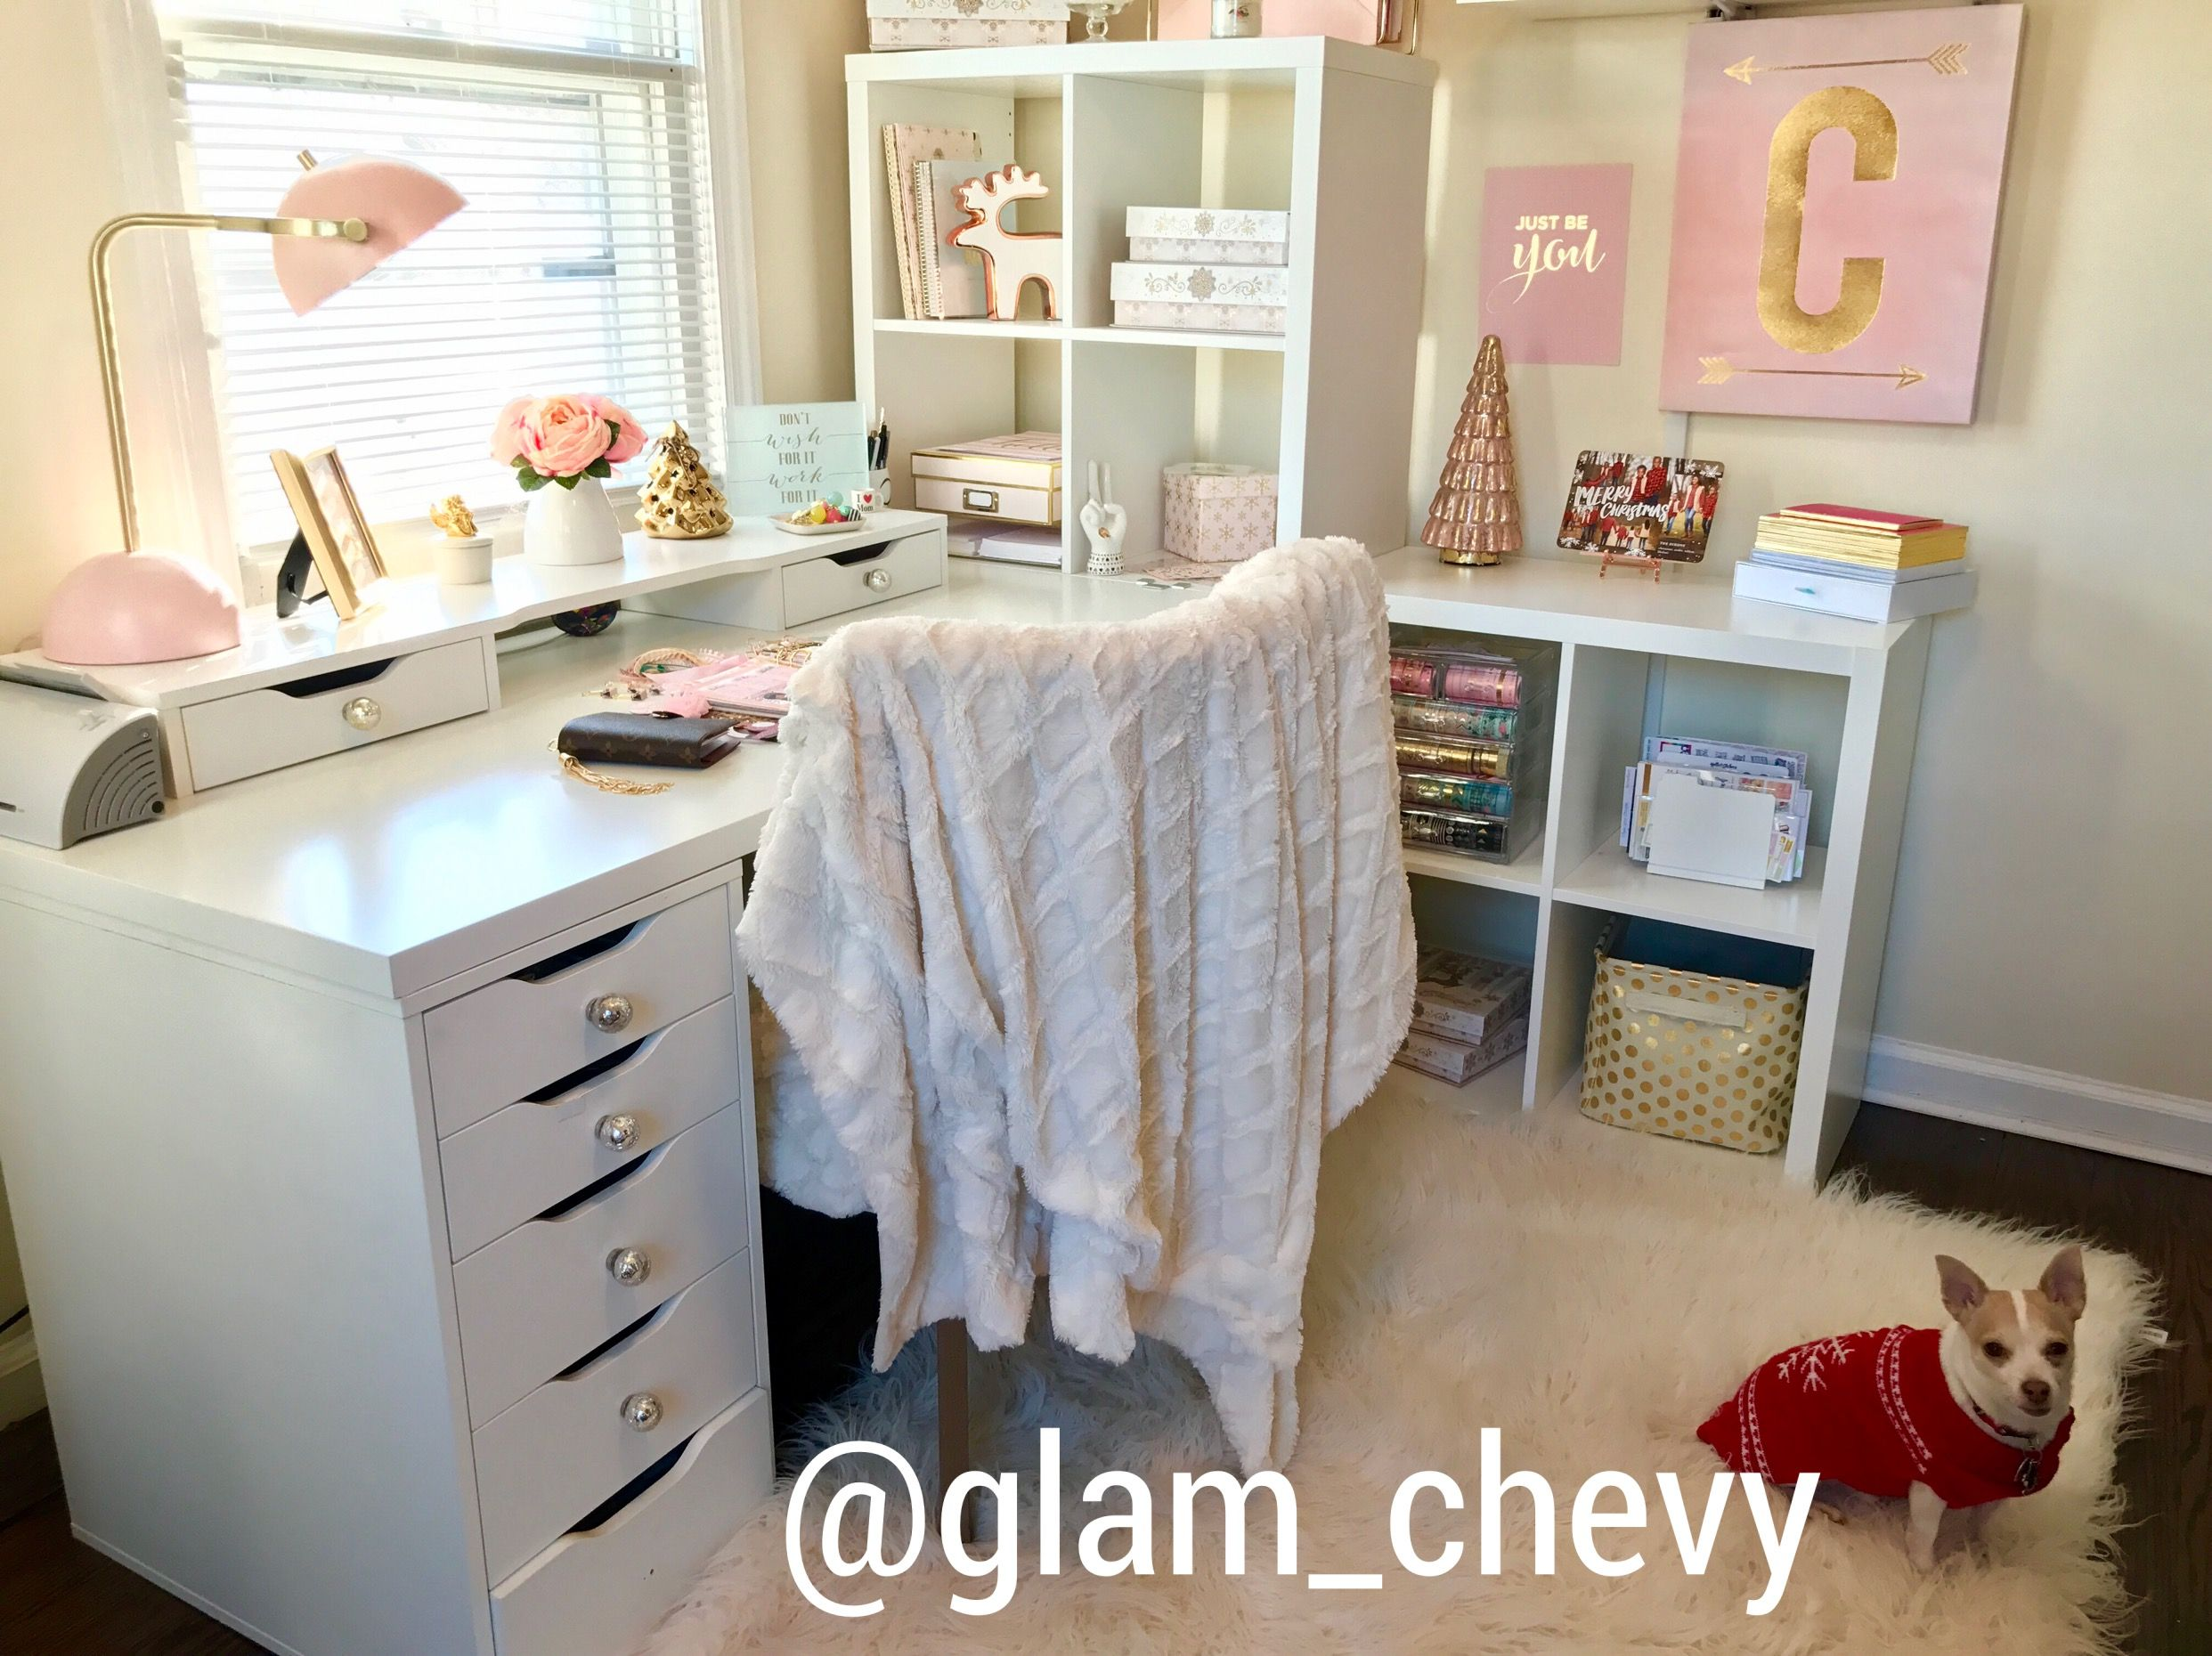 All pieces are from ikea. Ikea home office solutions. Perfect Home office for a planner addict to plan and craft. Great craft space and  perfect if you have a small space office.  Chic office. Planner space. Planning space. IKEA, DIY, Craft room